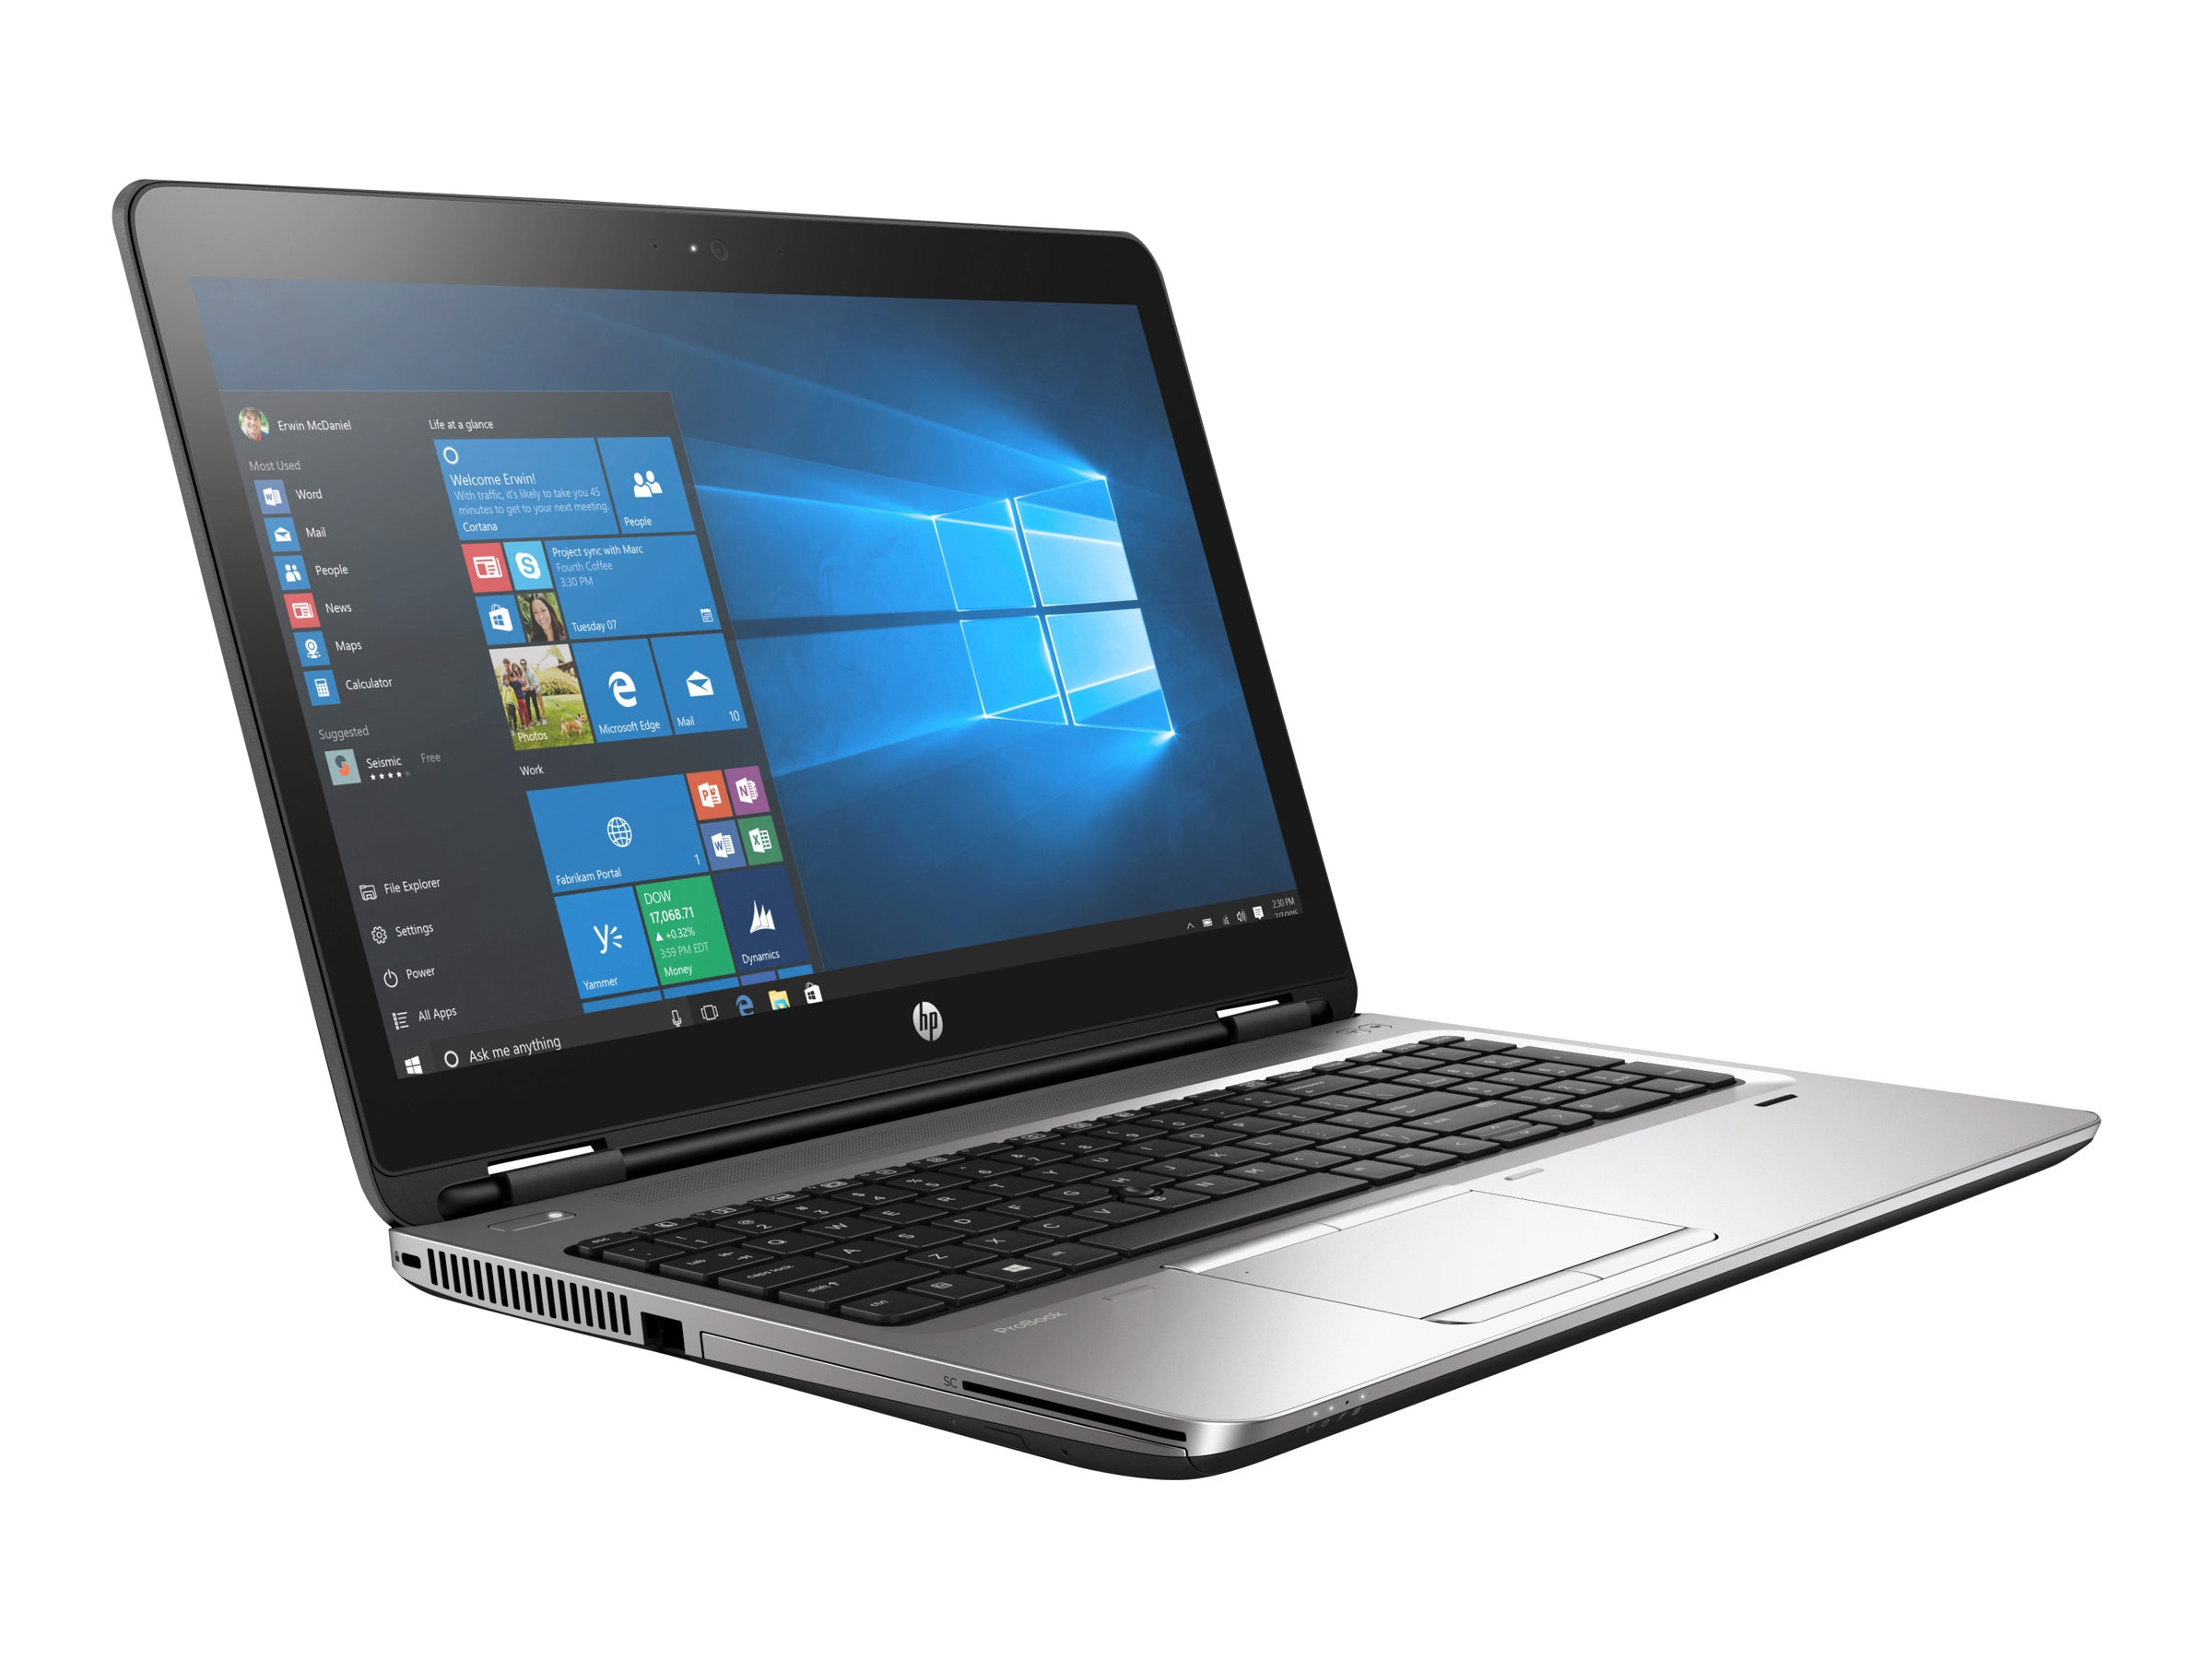 HP ProBook 655 G2 1.6GHz A8 Pro 15.6in display, V1P85UA#ABA